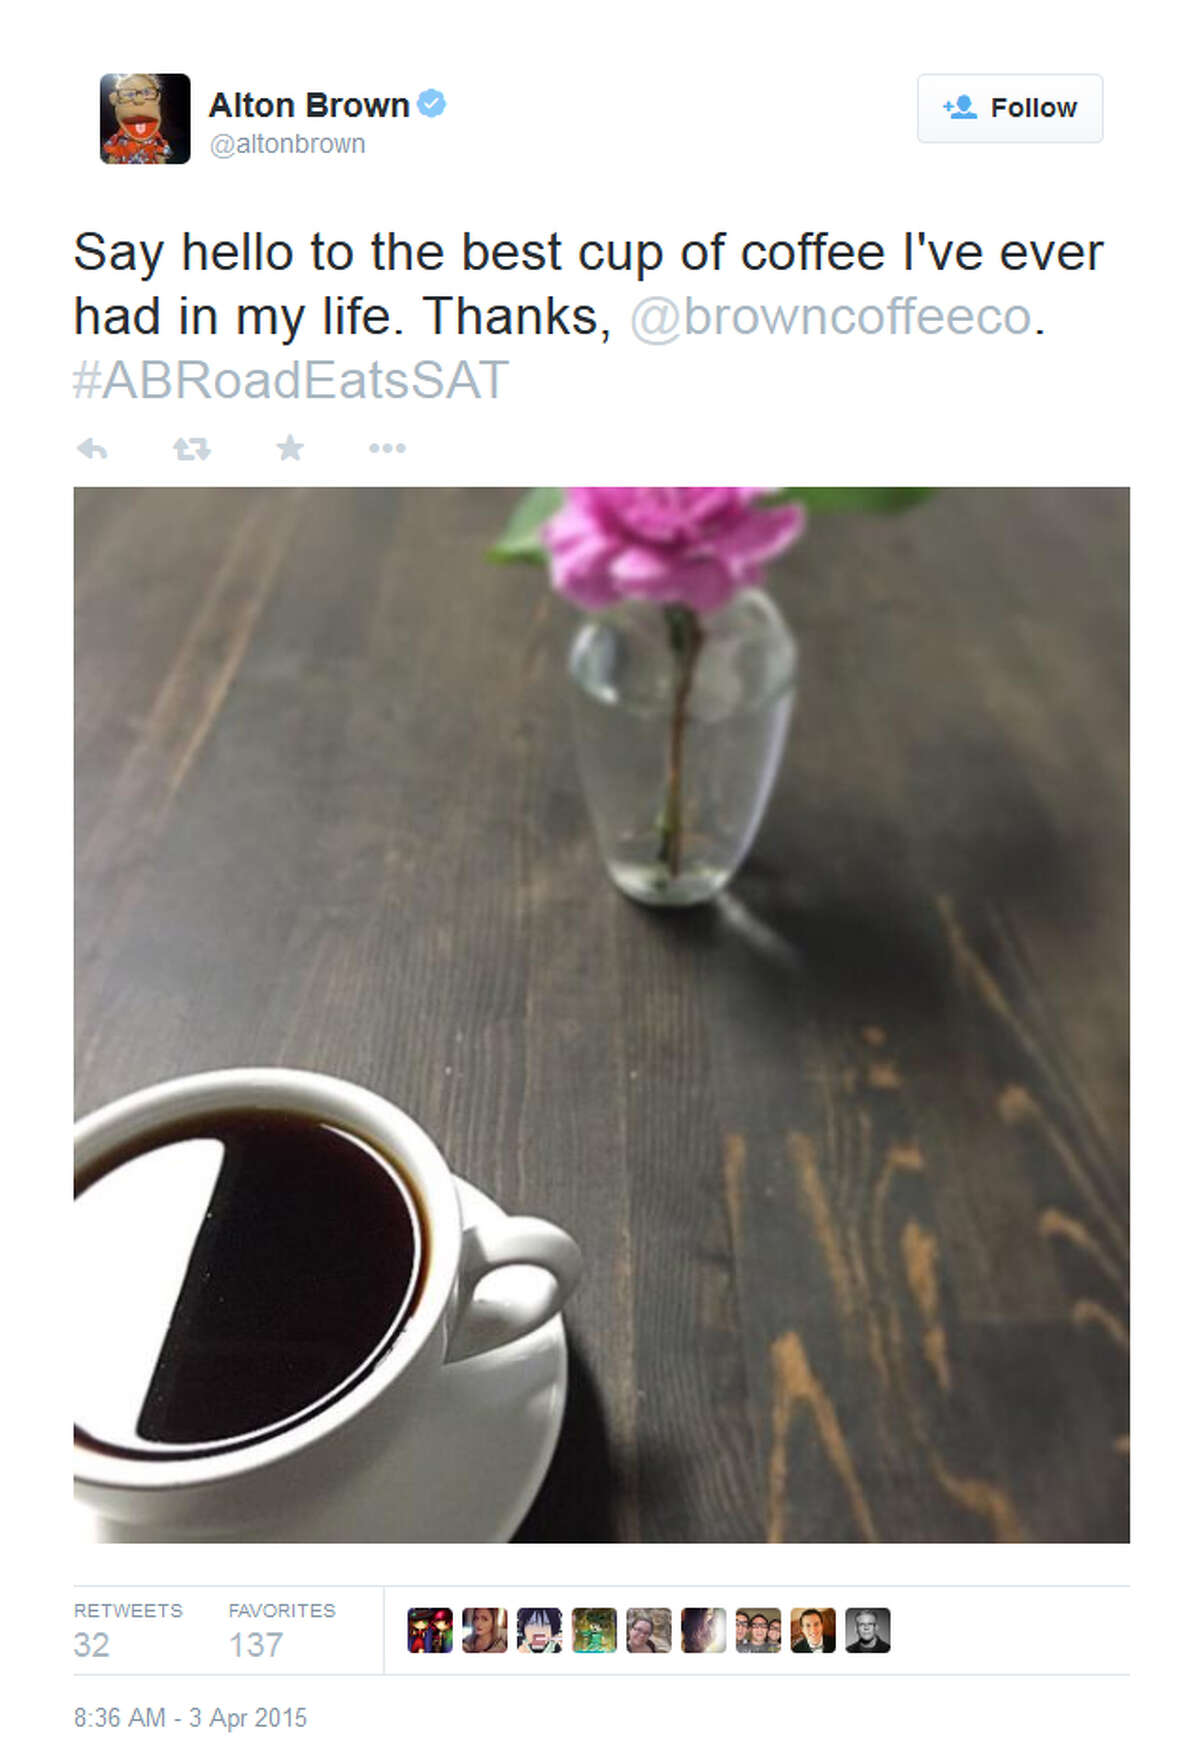 """Alton Brown (@altonbrown) tweeted this photo from San Antonio's Brown Coffee Co. Friday morning, April 3, 2015, saying it was """"the best cup of coffee I've ever had in my life."""""""